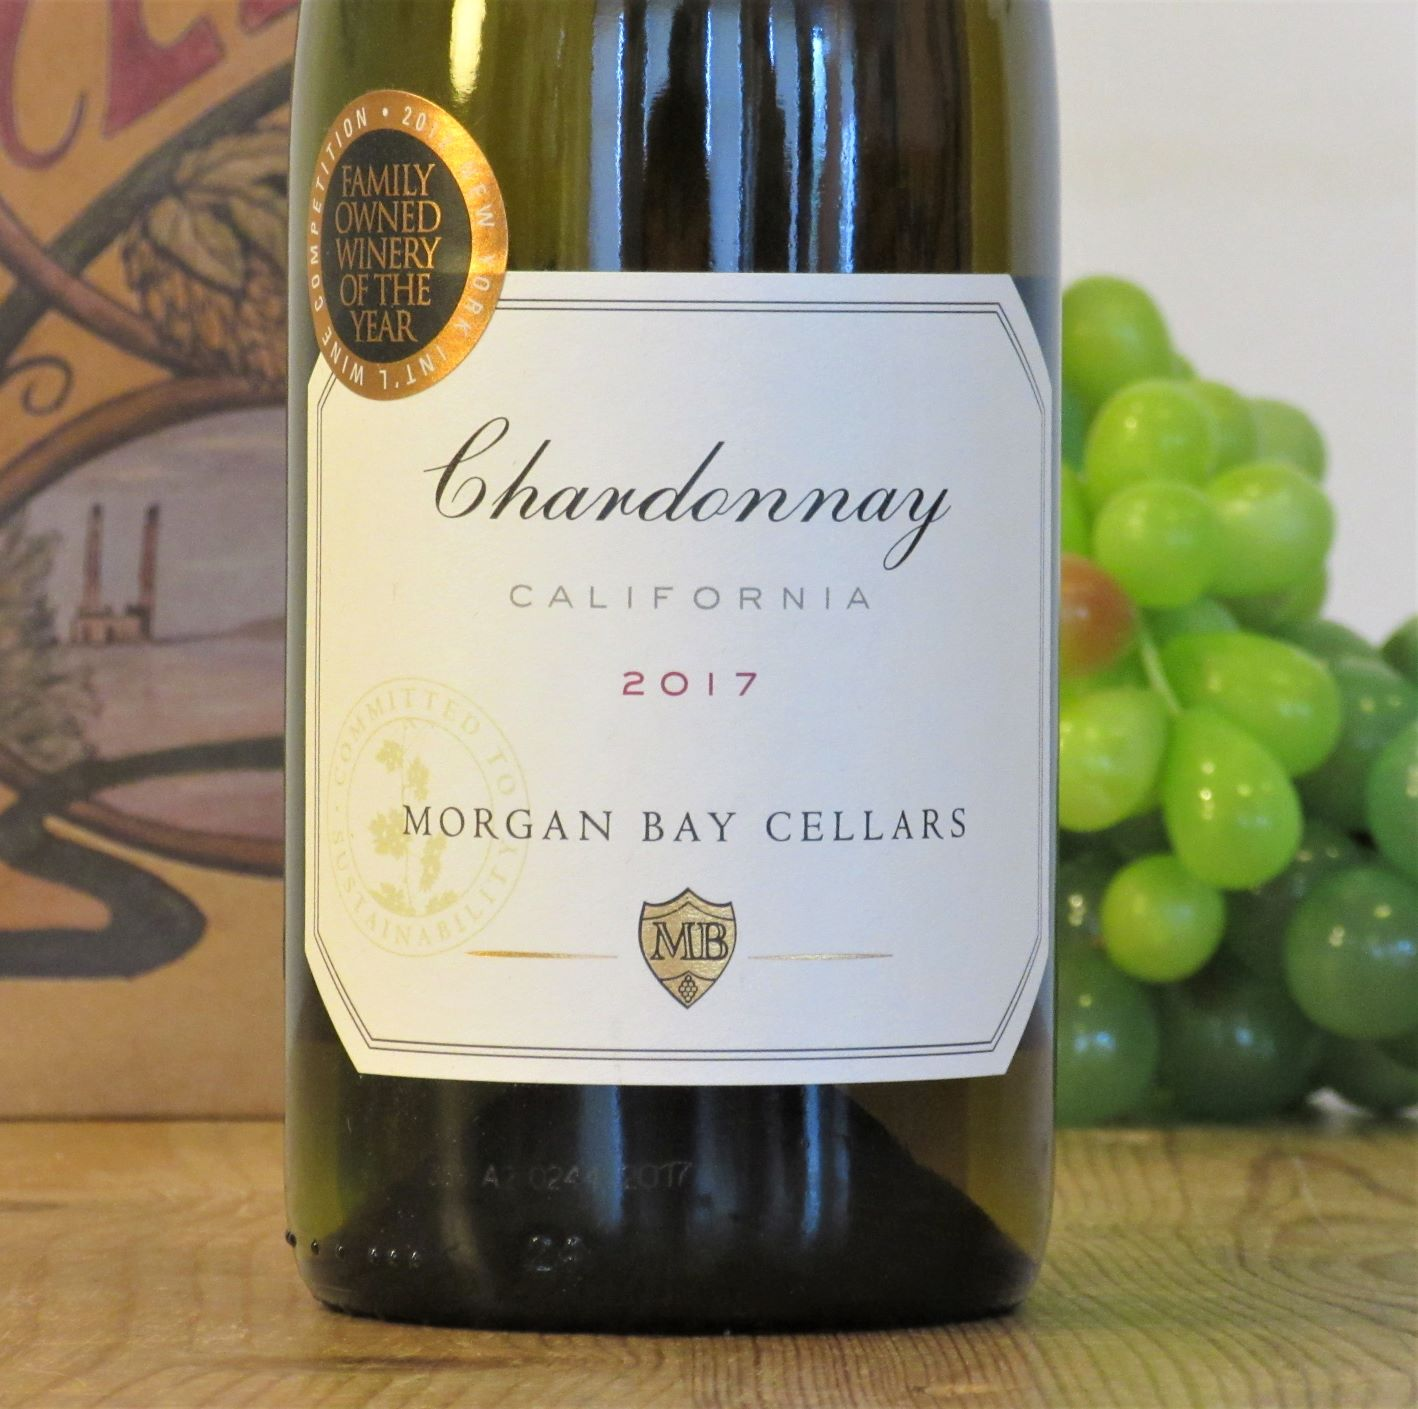 Morgan Bay Cellars Chardonnay